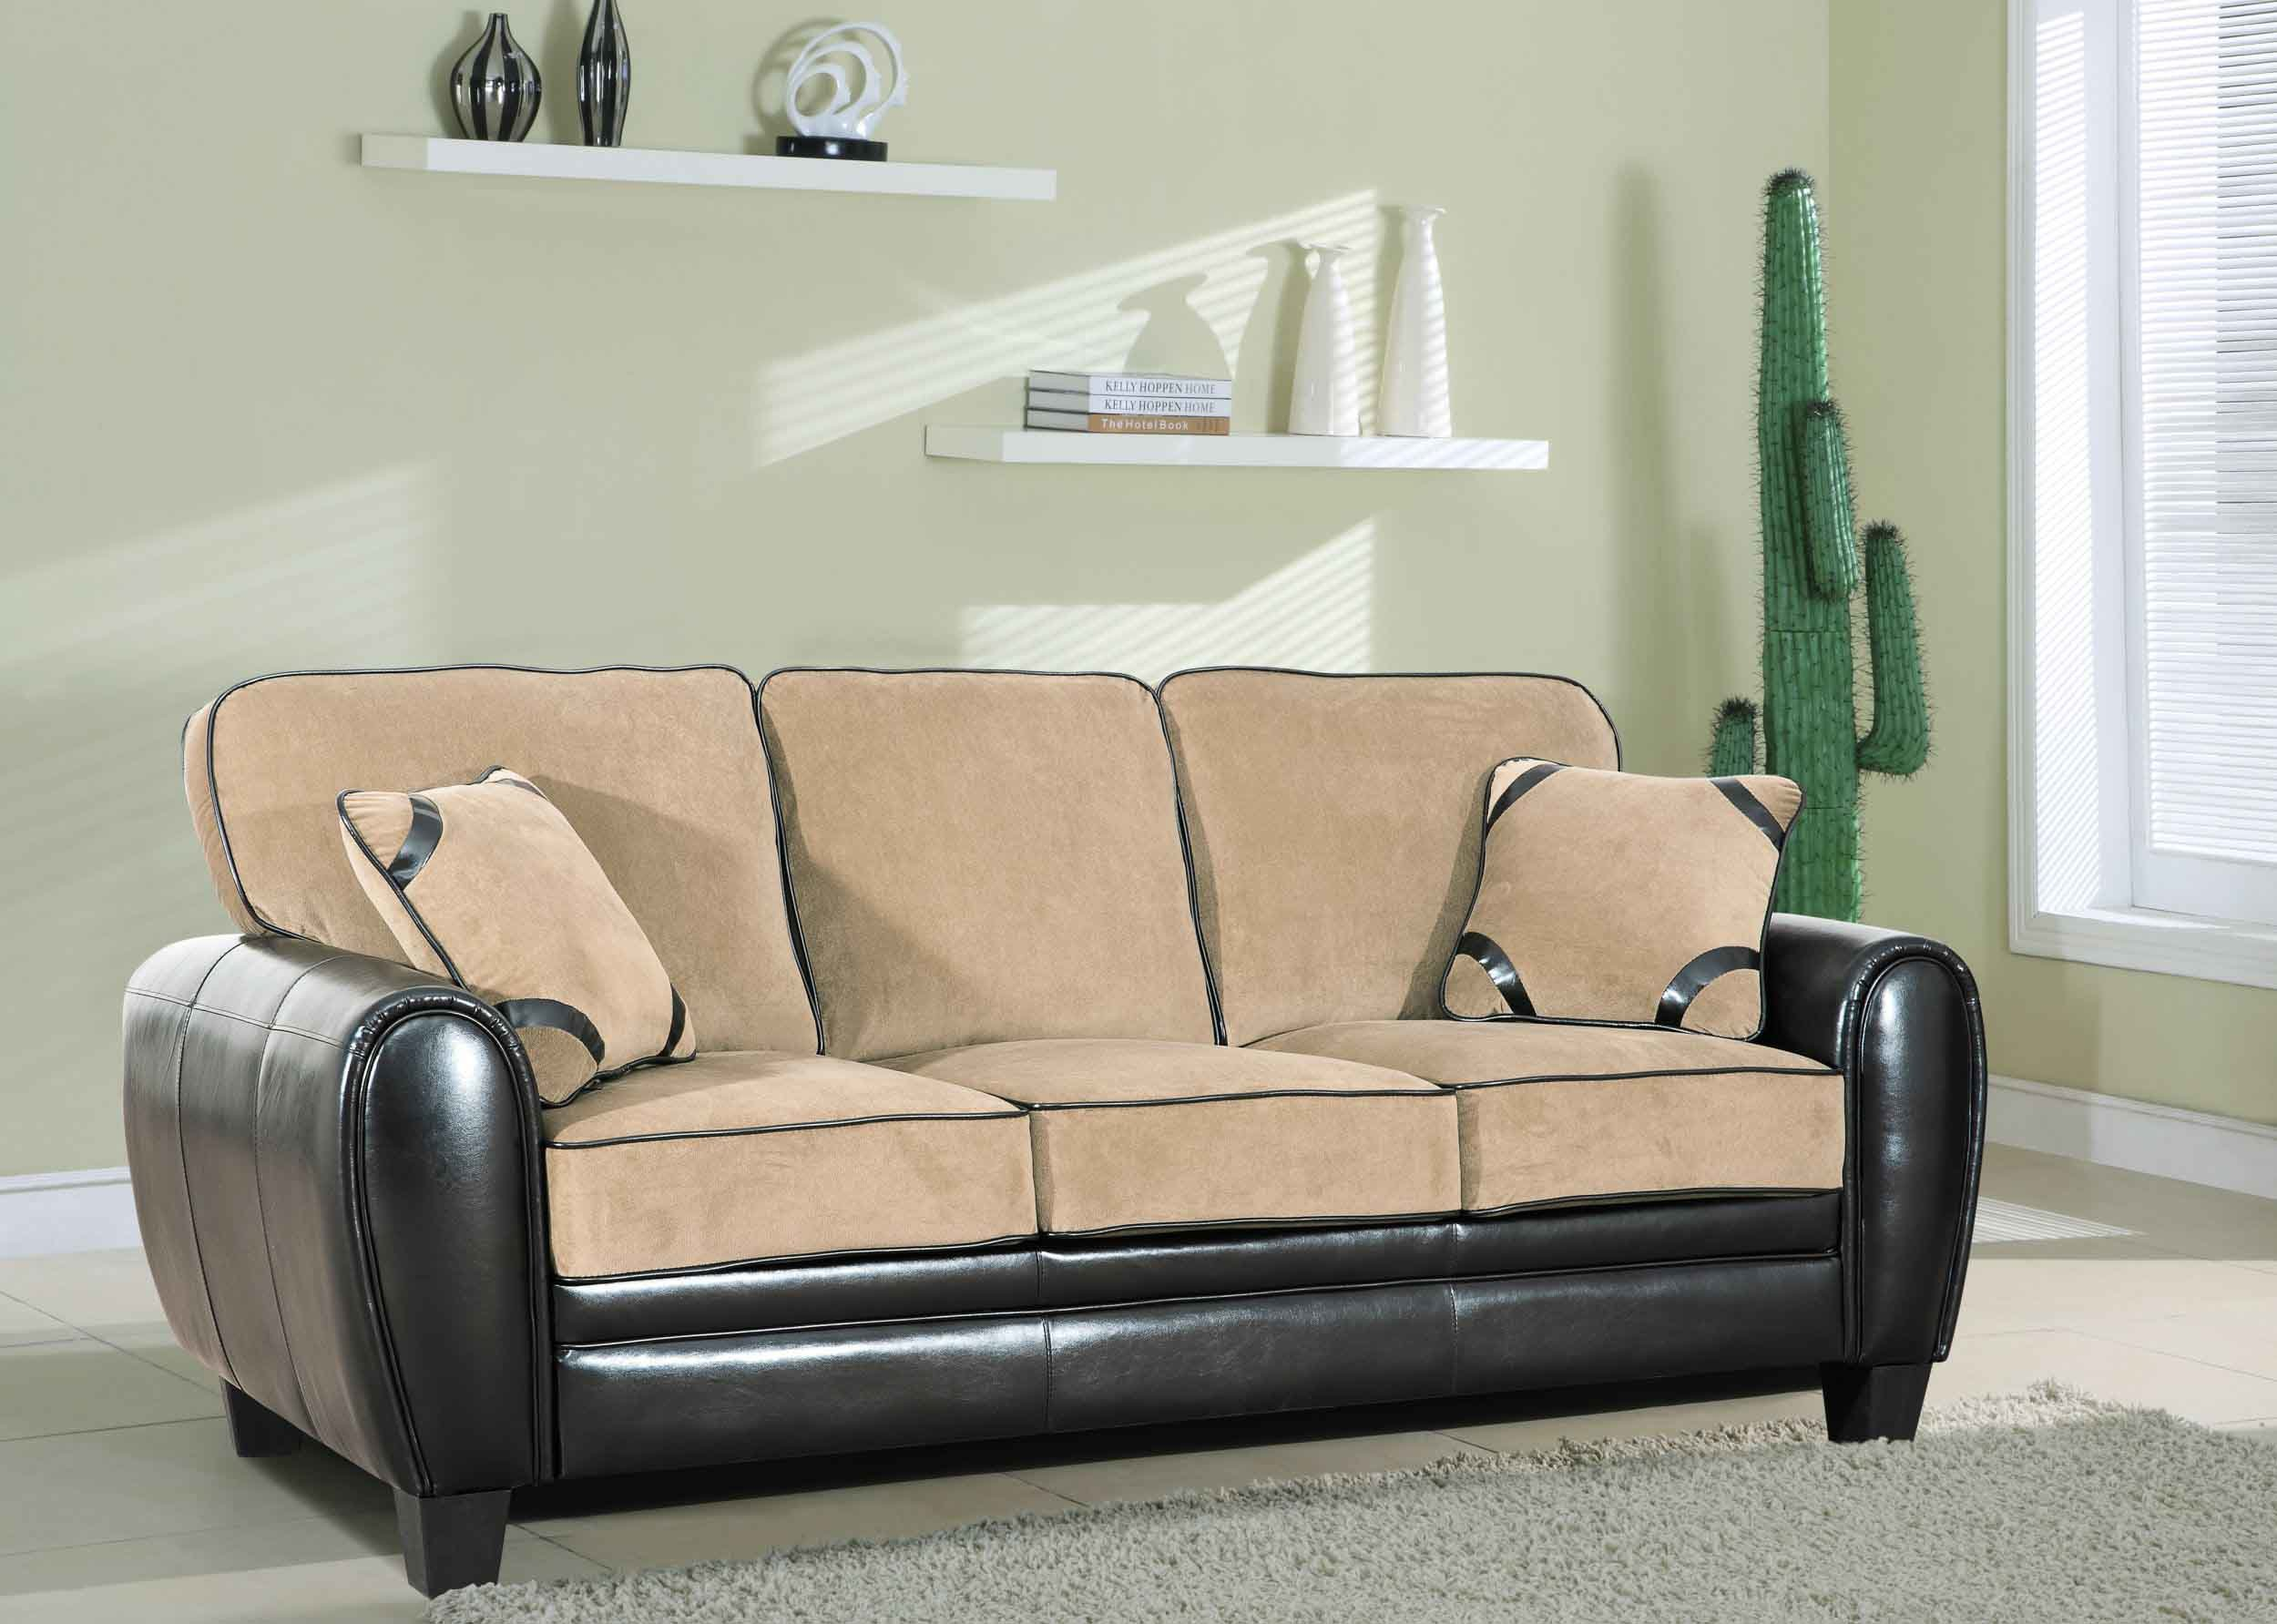 Furniture Sofa Set 2500 x 1783